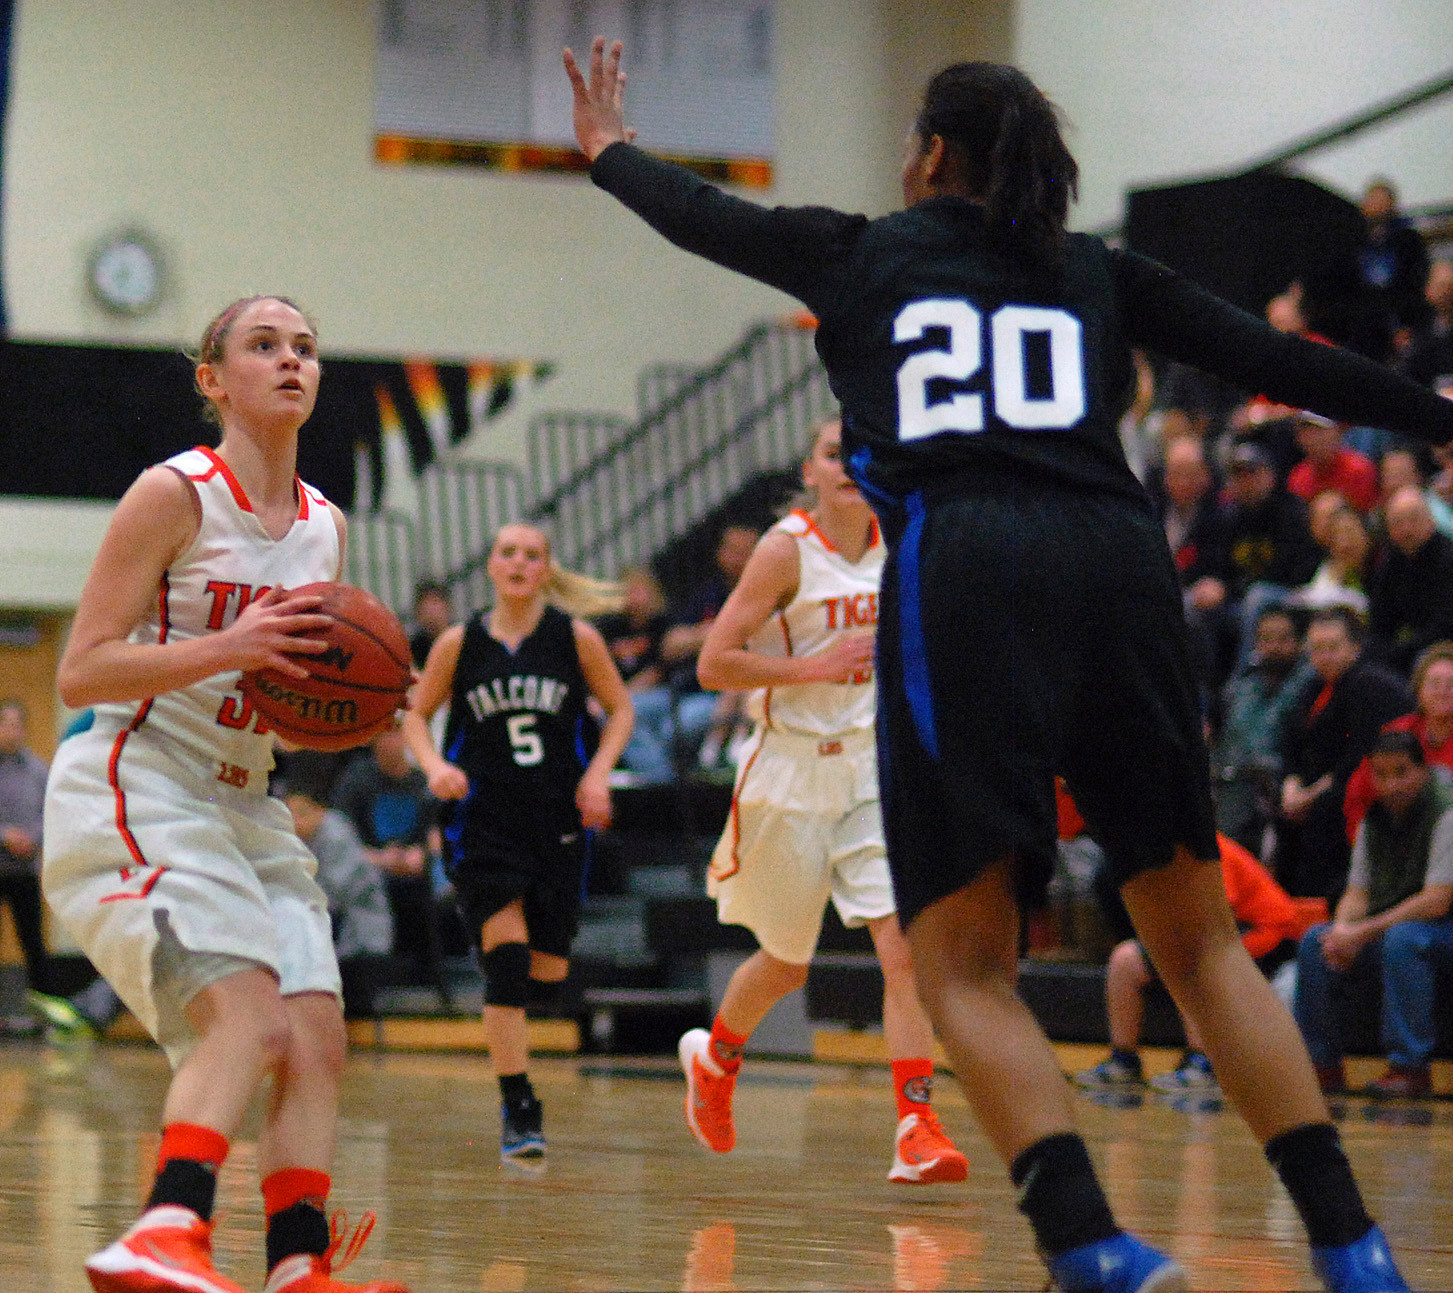 Lady Tigers Knock Off 5A Power Highlands Ranch